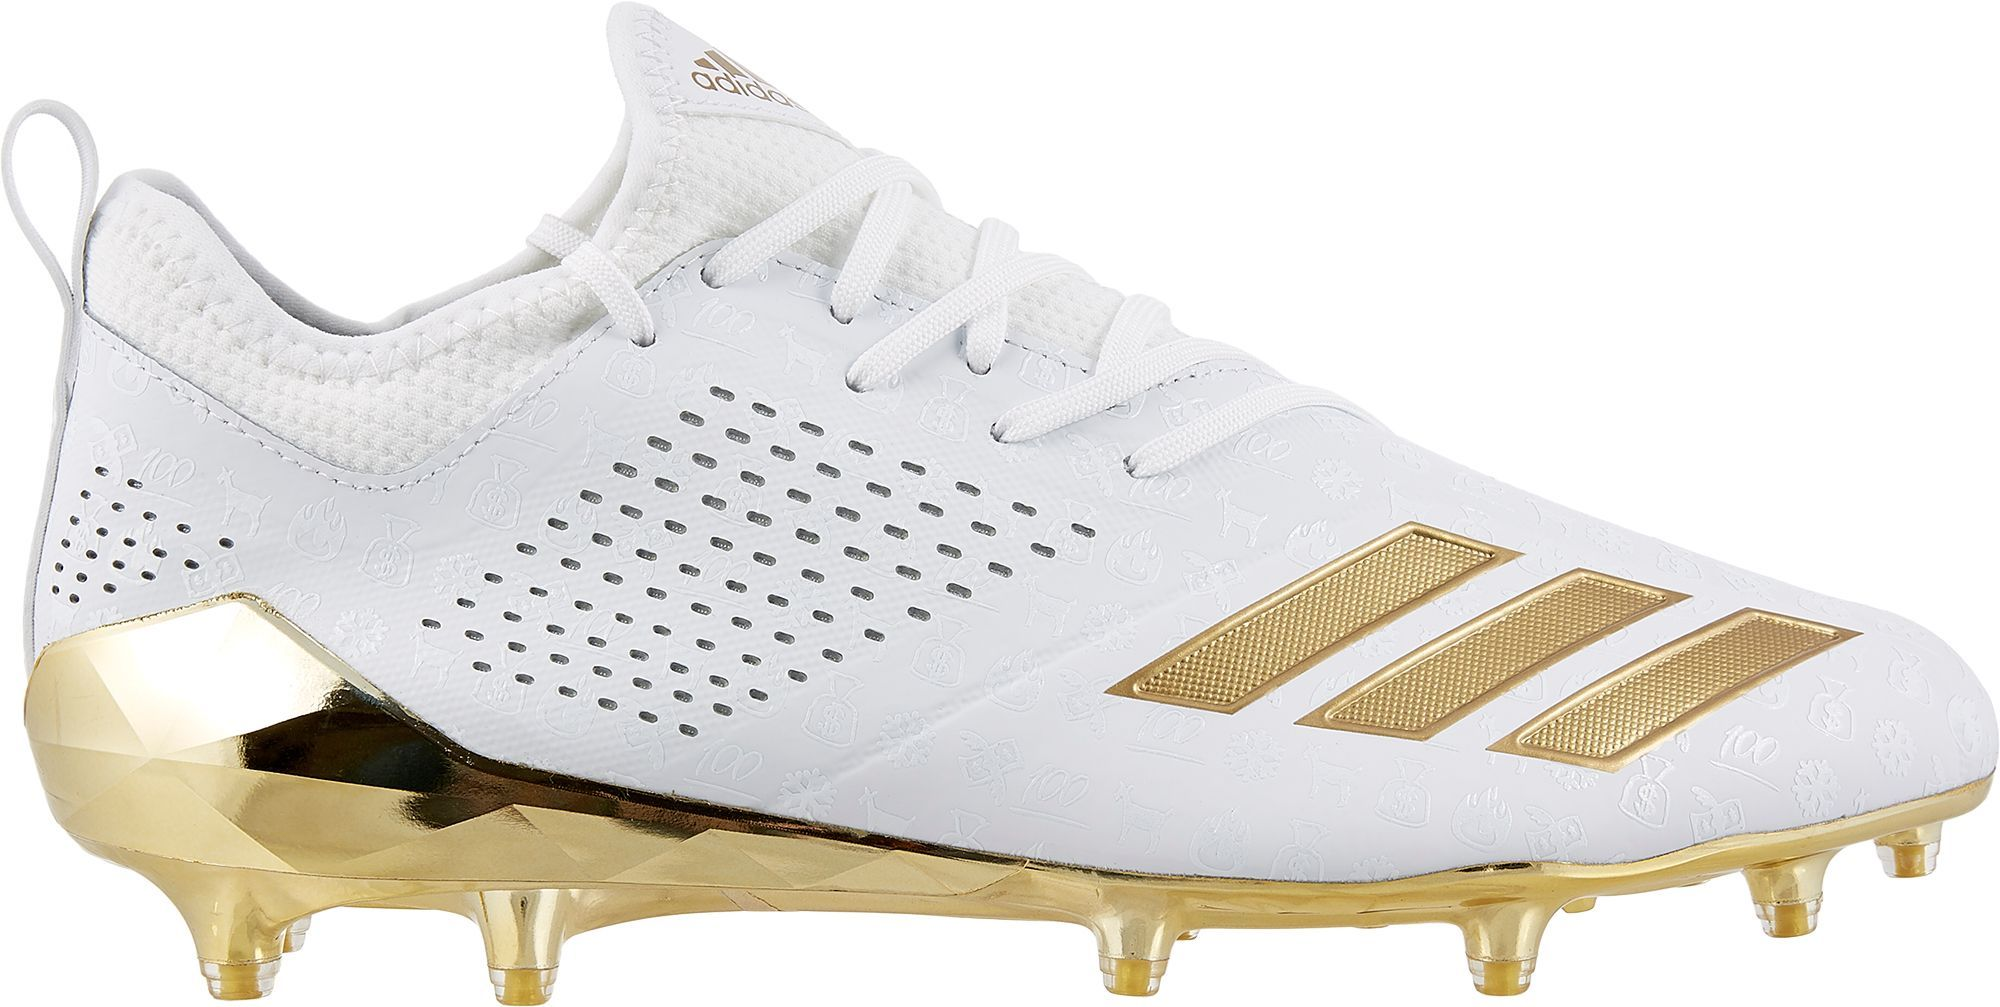 c49ca9c036e adidas Men's adiZERO 5-Star 7.0 Adimoji Football Cleats | Products ...